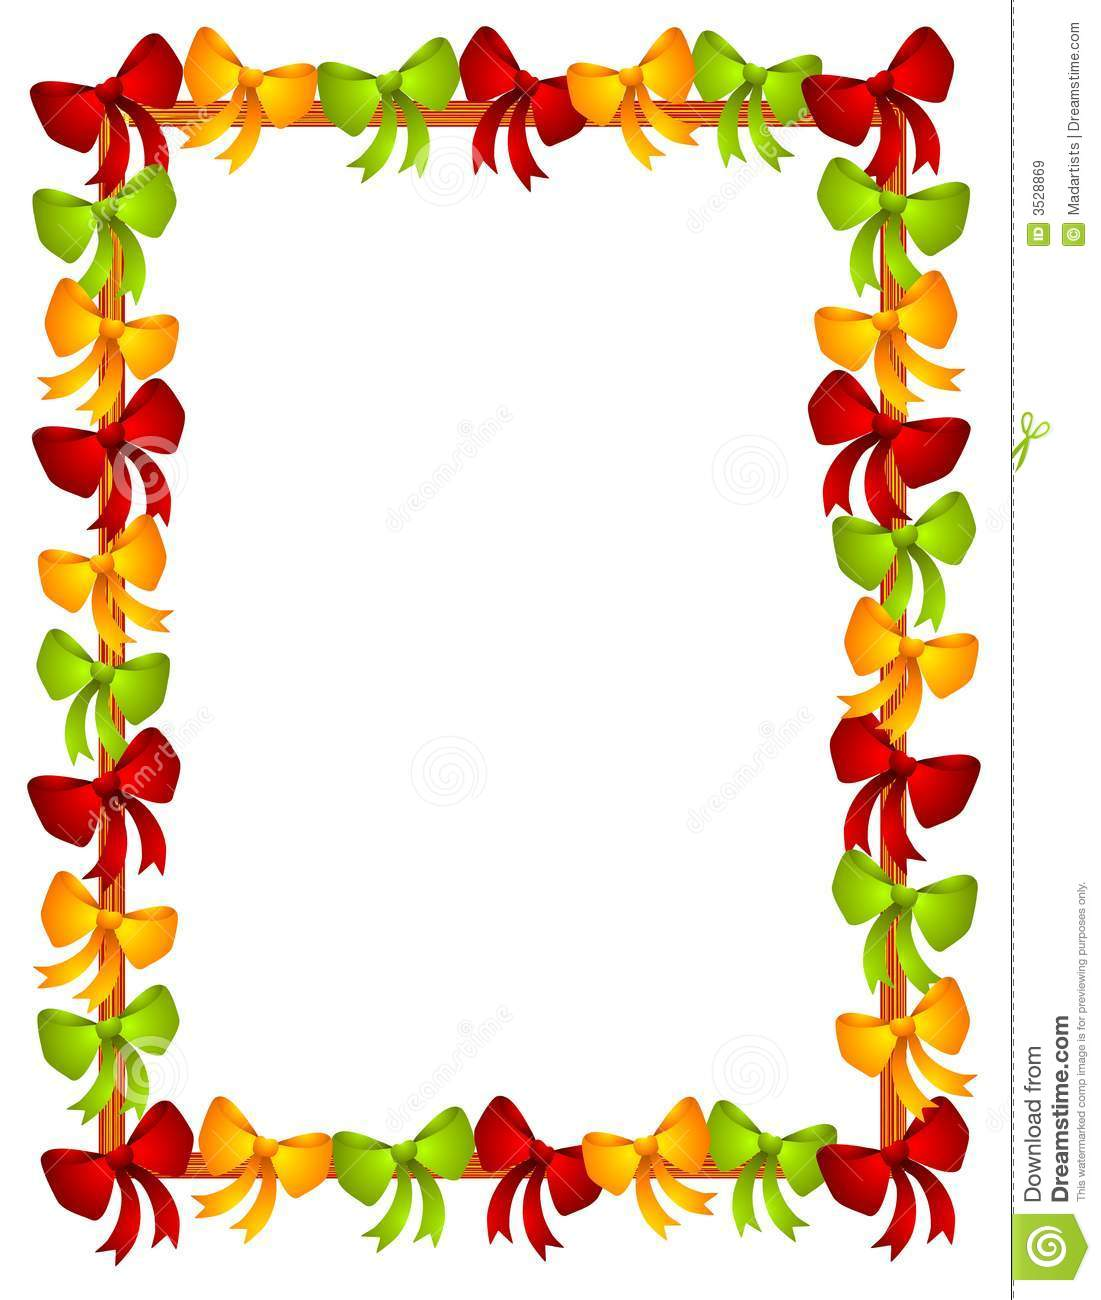 frames and borders clip art free download 10 free Cliparts.